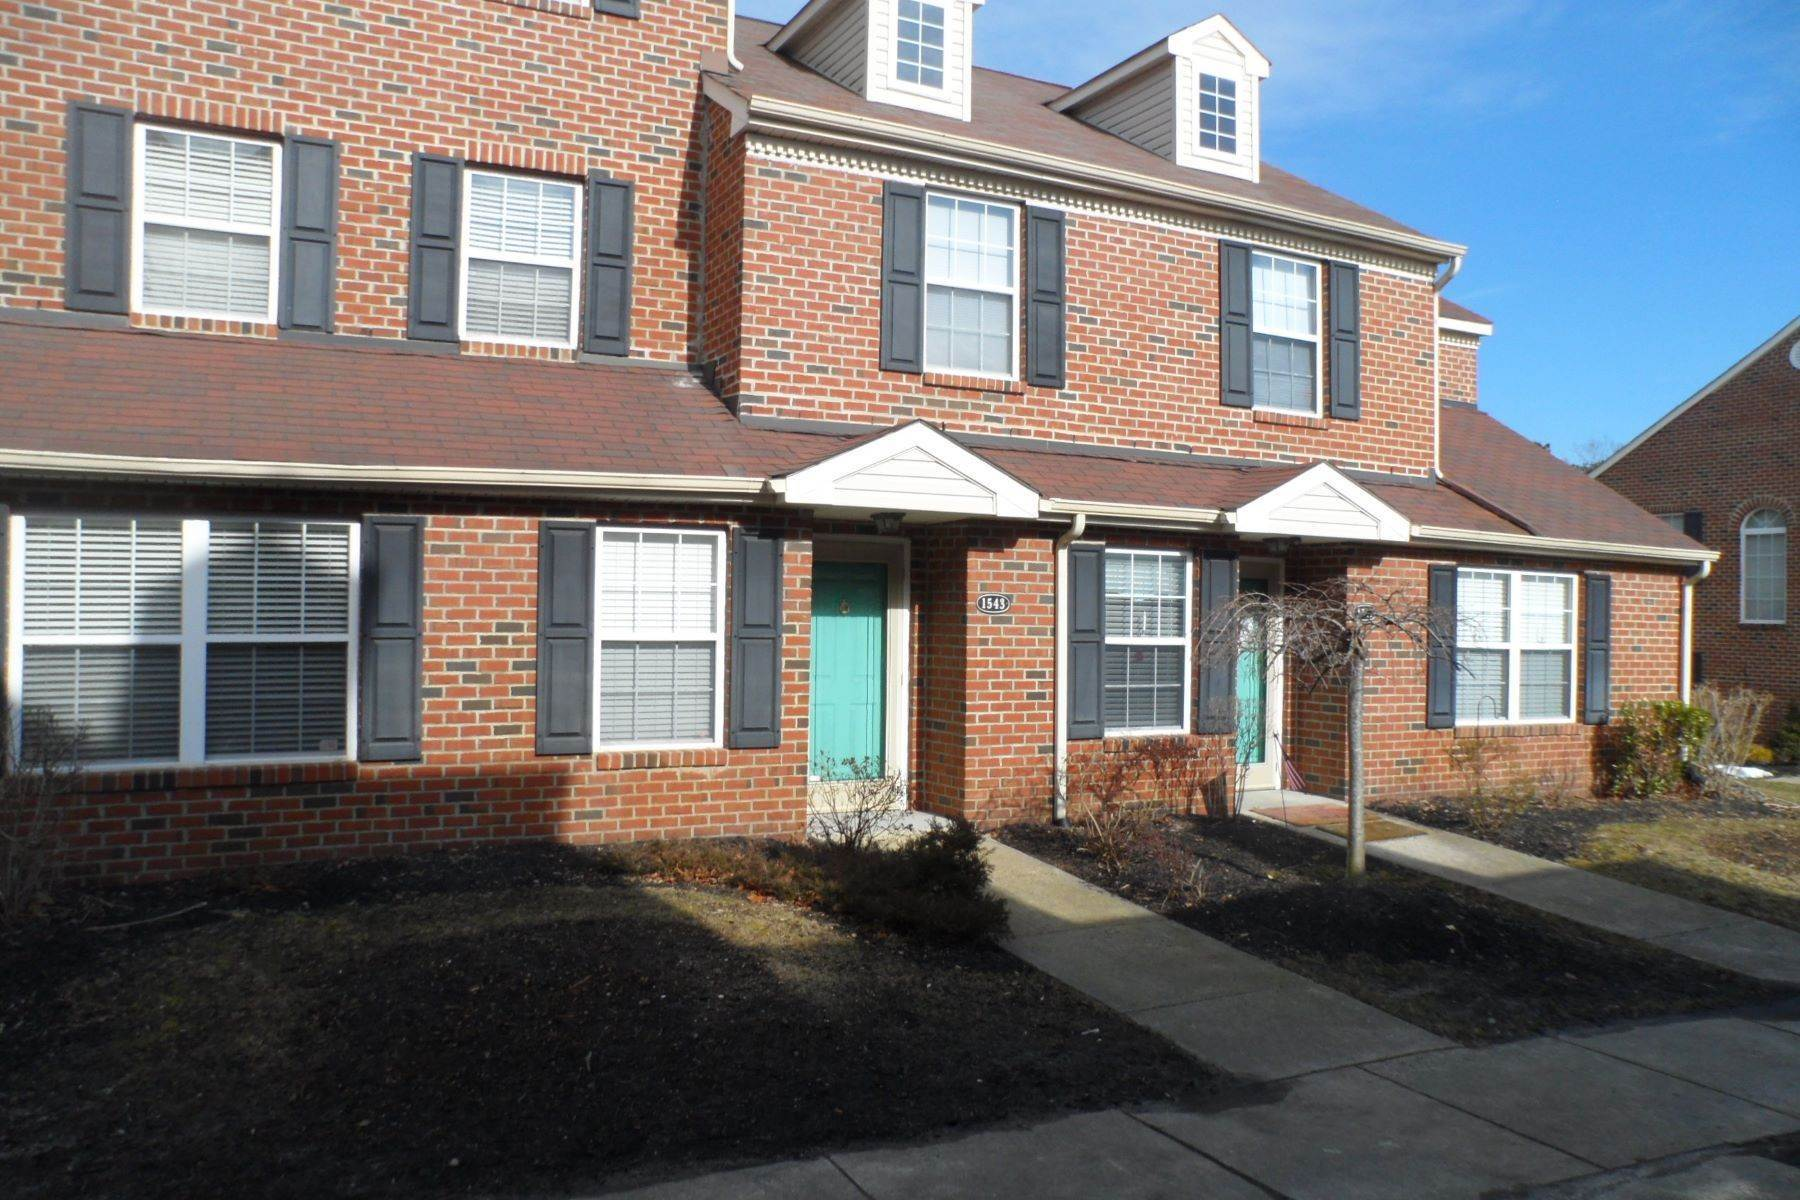 Condominiums for Sale at 1543 Benjamin Franklin Ct Mays Landing Village 1543 Benjamin Franklin Ct Mays Landing, New Jersey 08330 United States